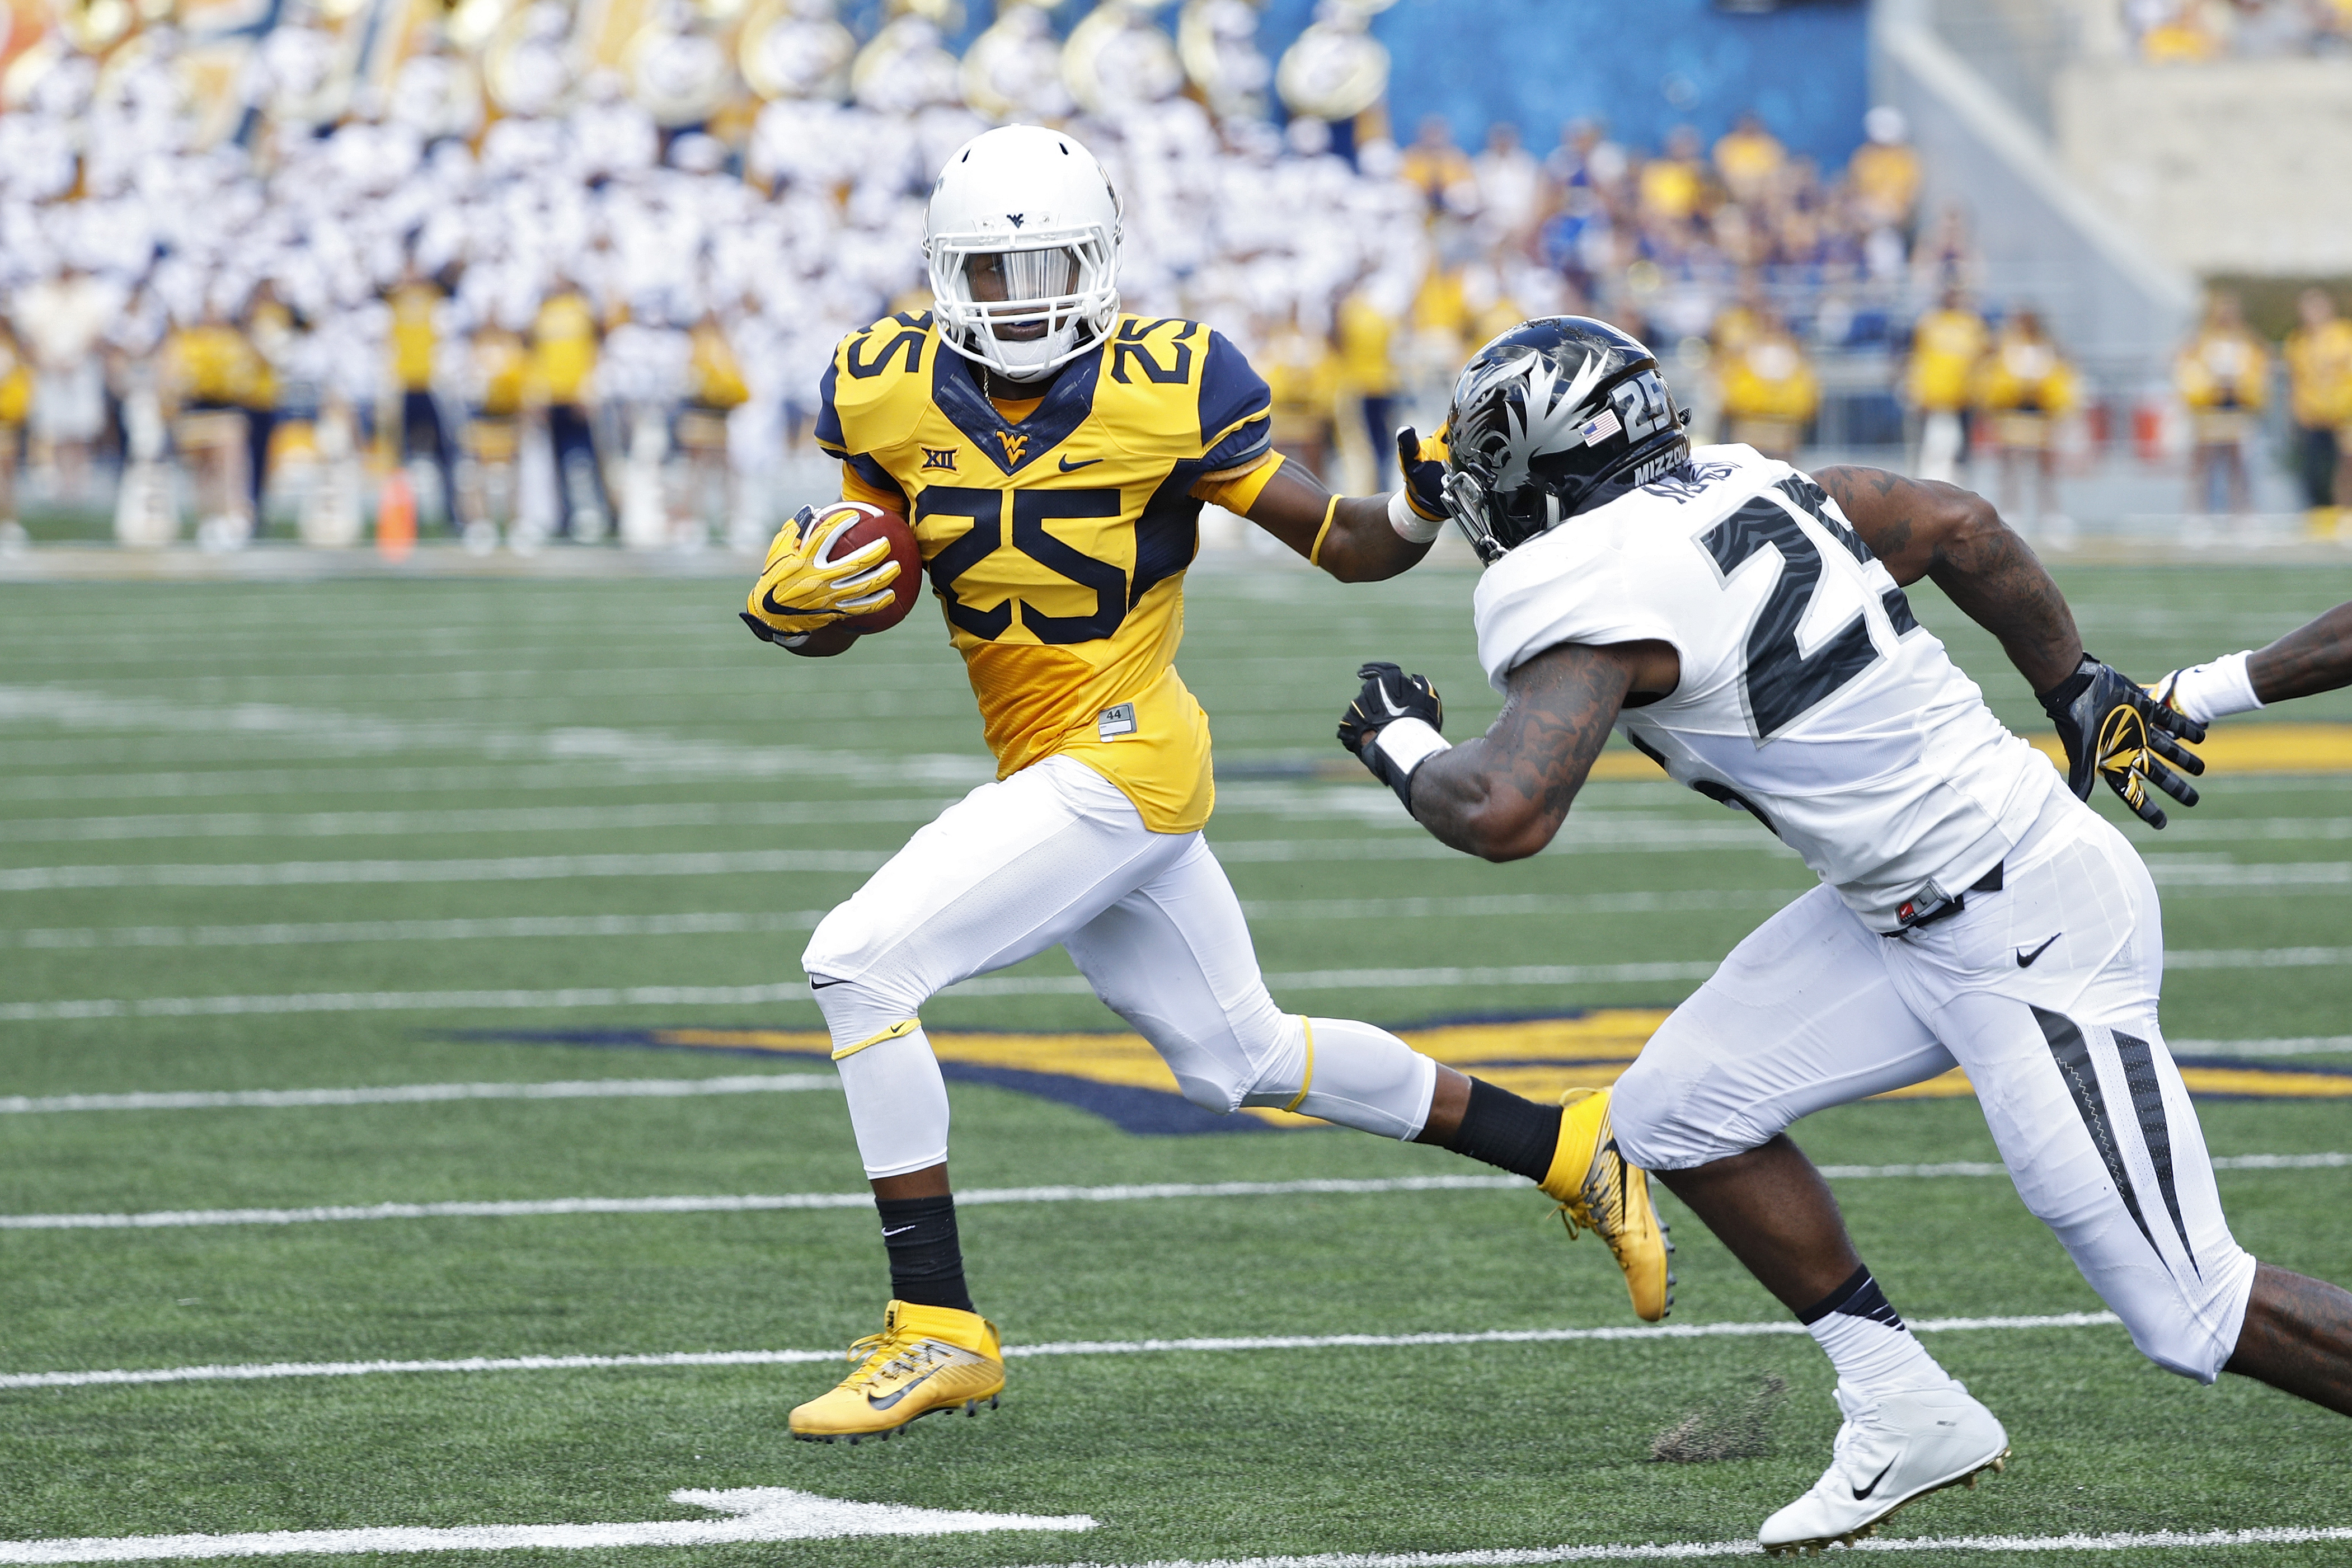 West Virginia Football Projected 2 Deep Depth Chart For 2017